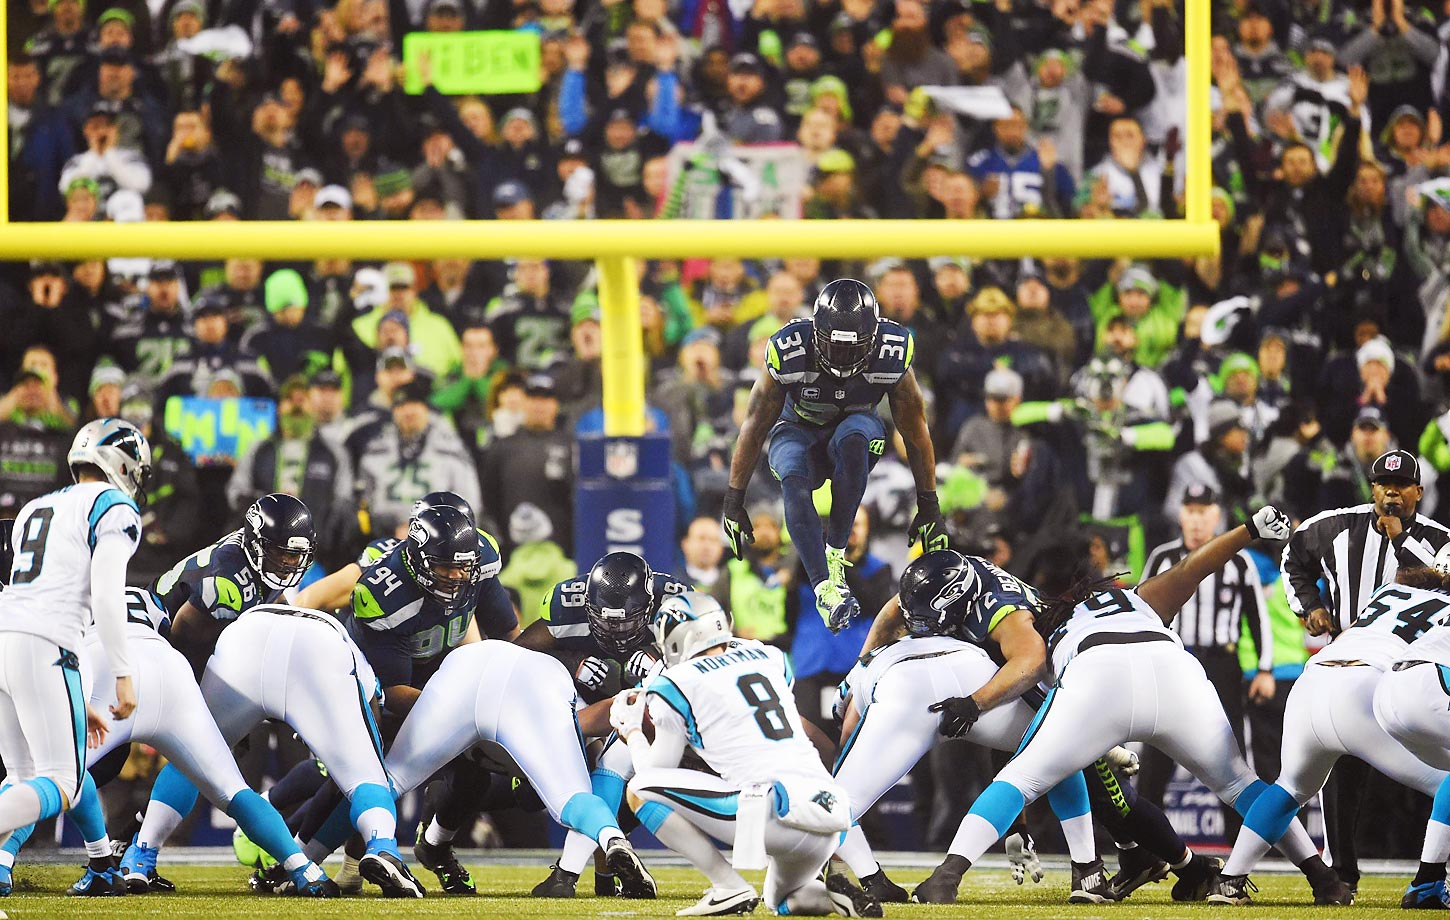 Kam Chancellor jumps over the line to attempt to block a field goal kick during an NFC Divisional Playoff game.